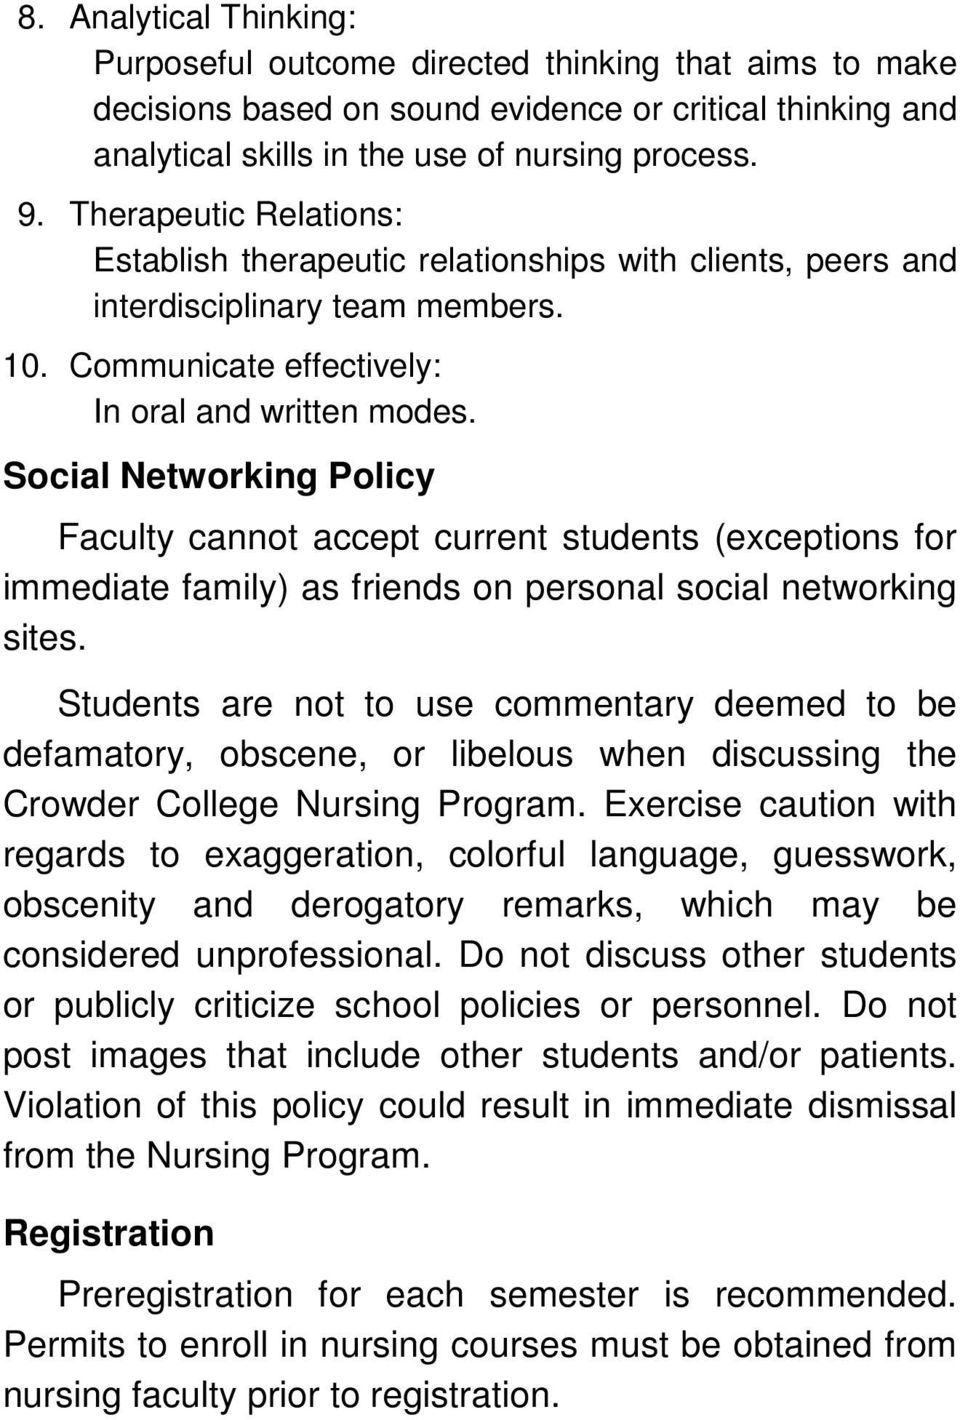 Social Networking Policy Faculty cannot accept current students (exceptions for immediate family) as friends on personal social networking sites.